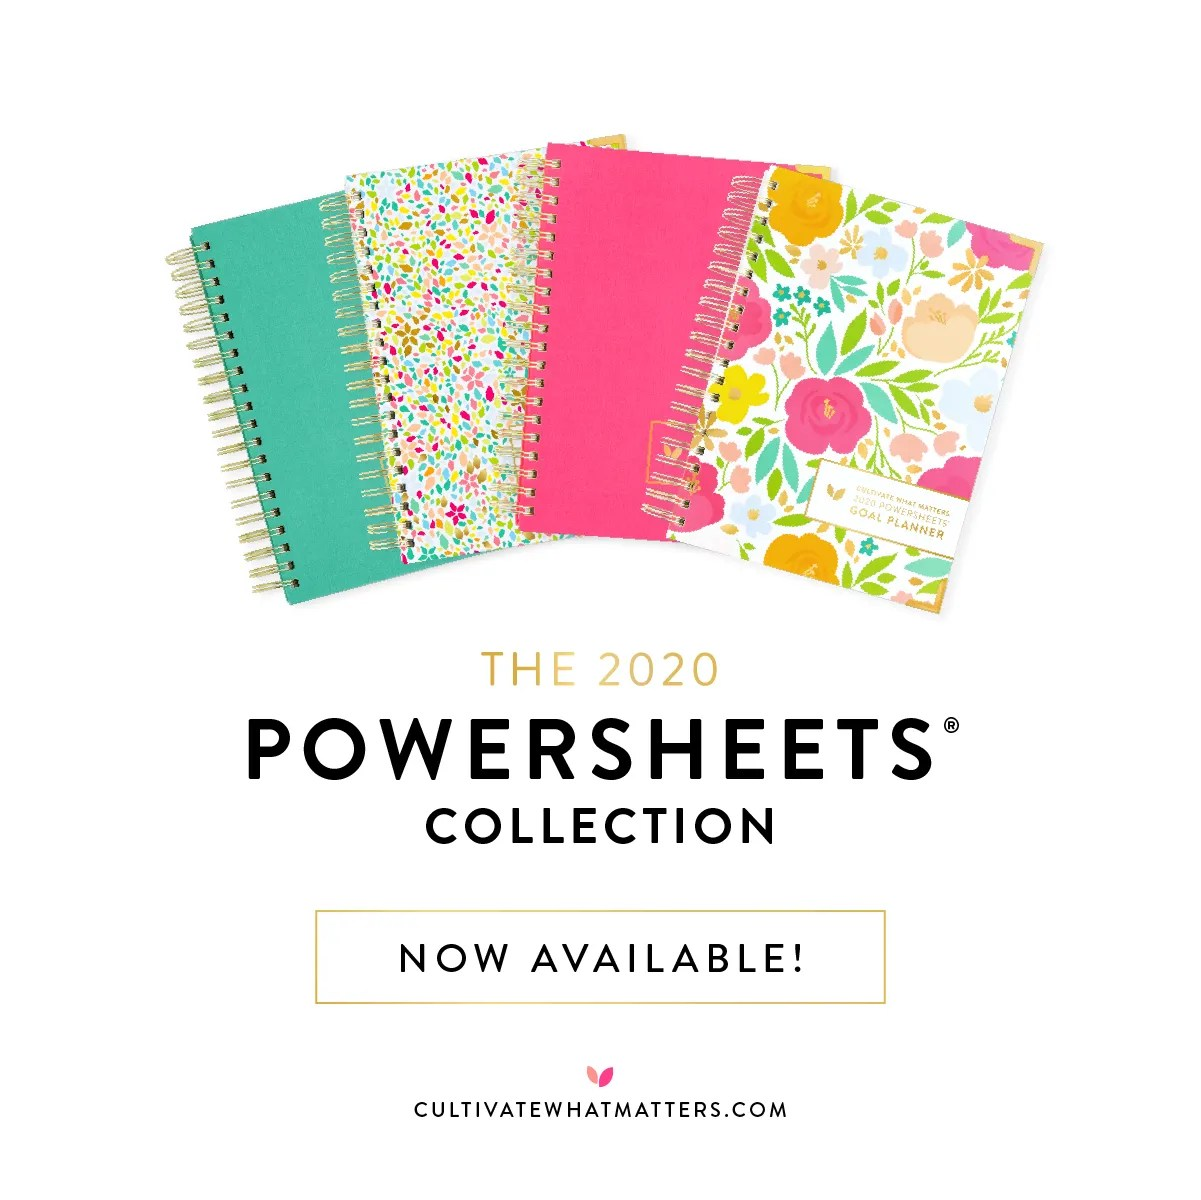 2020 Powersheets Collection